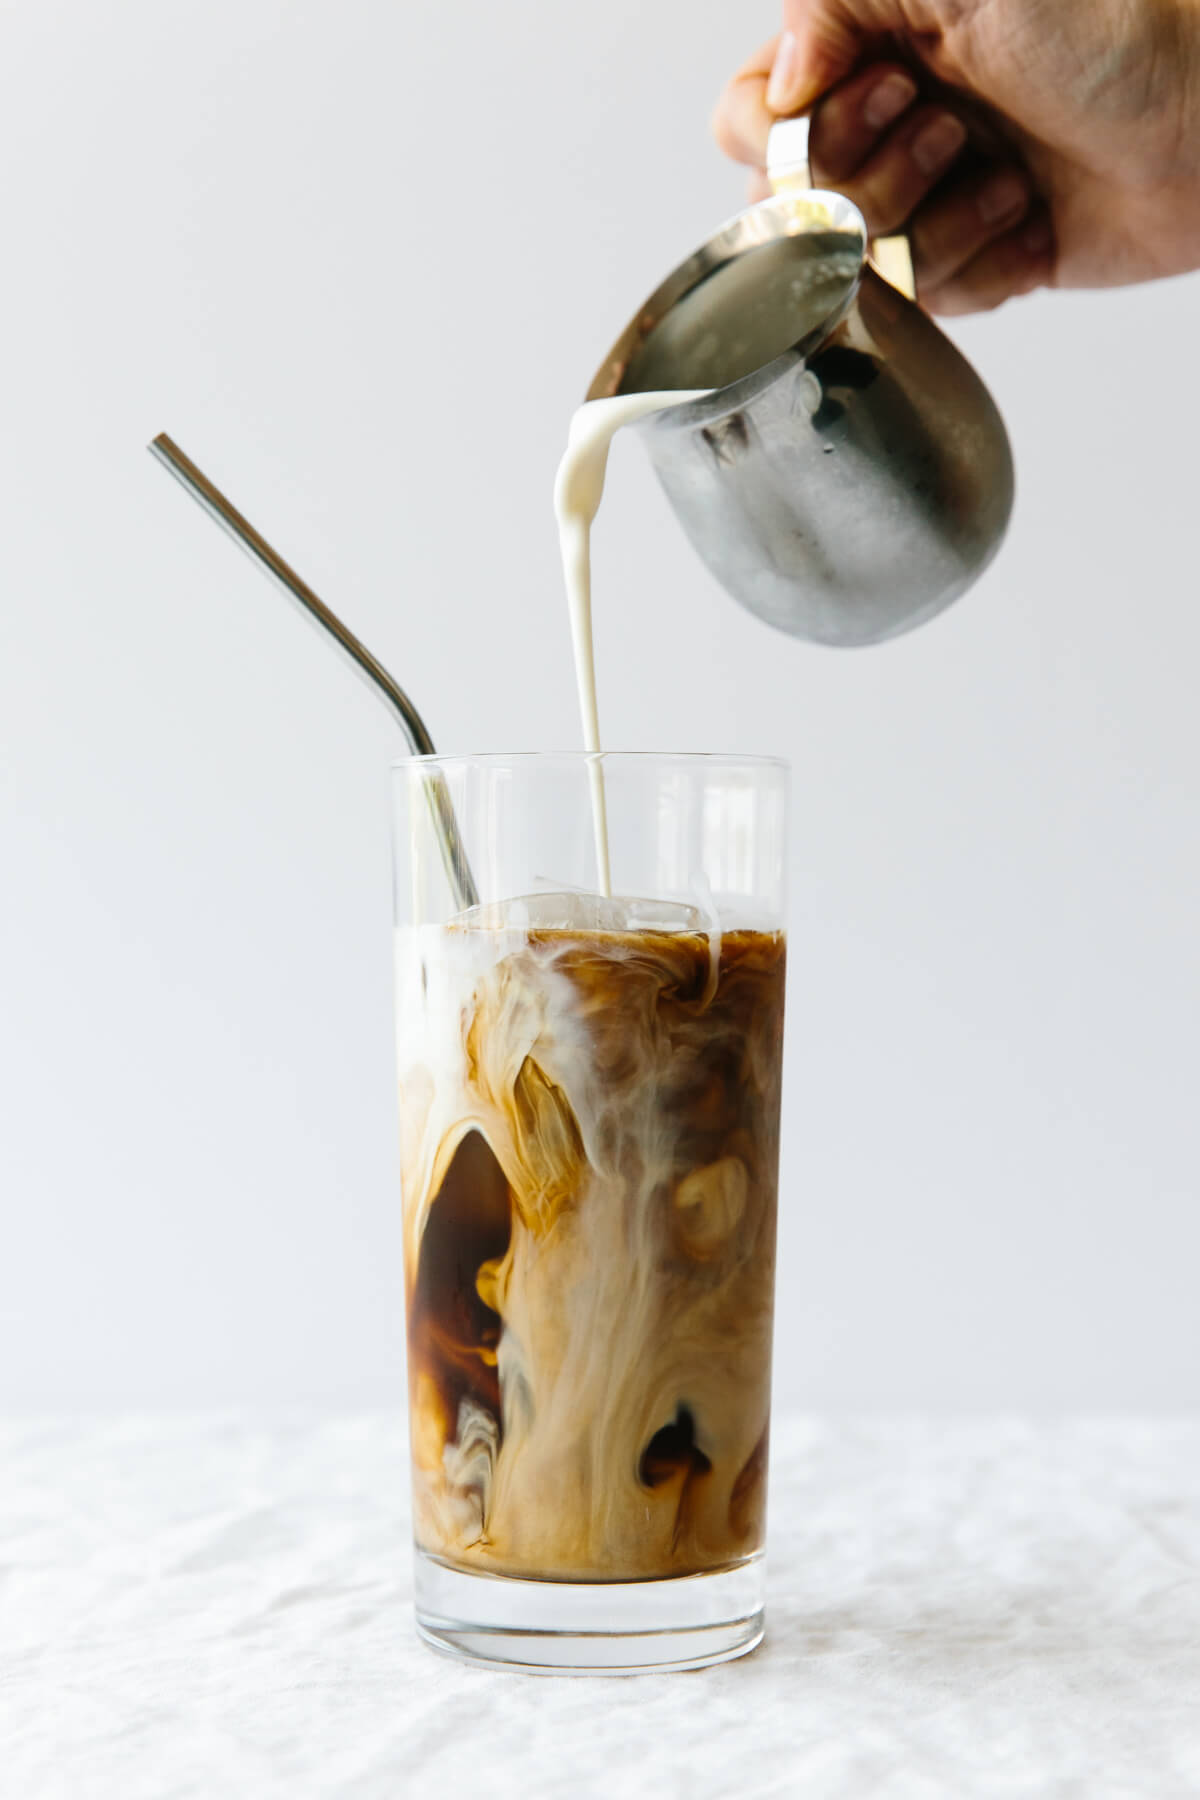 Pouring creamer into a glass of cold brew coffee.